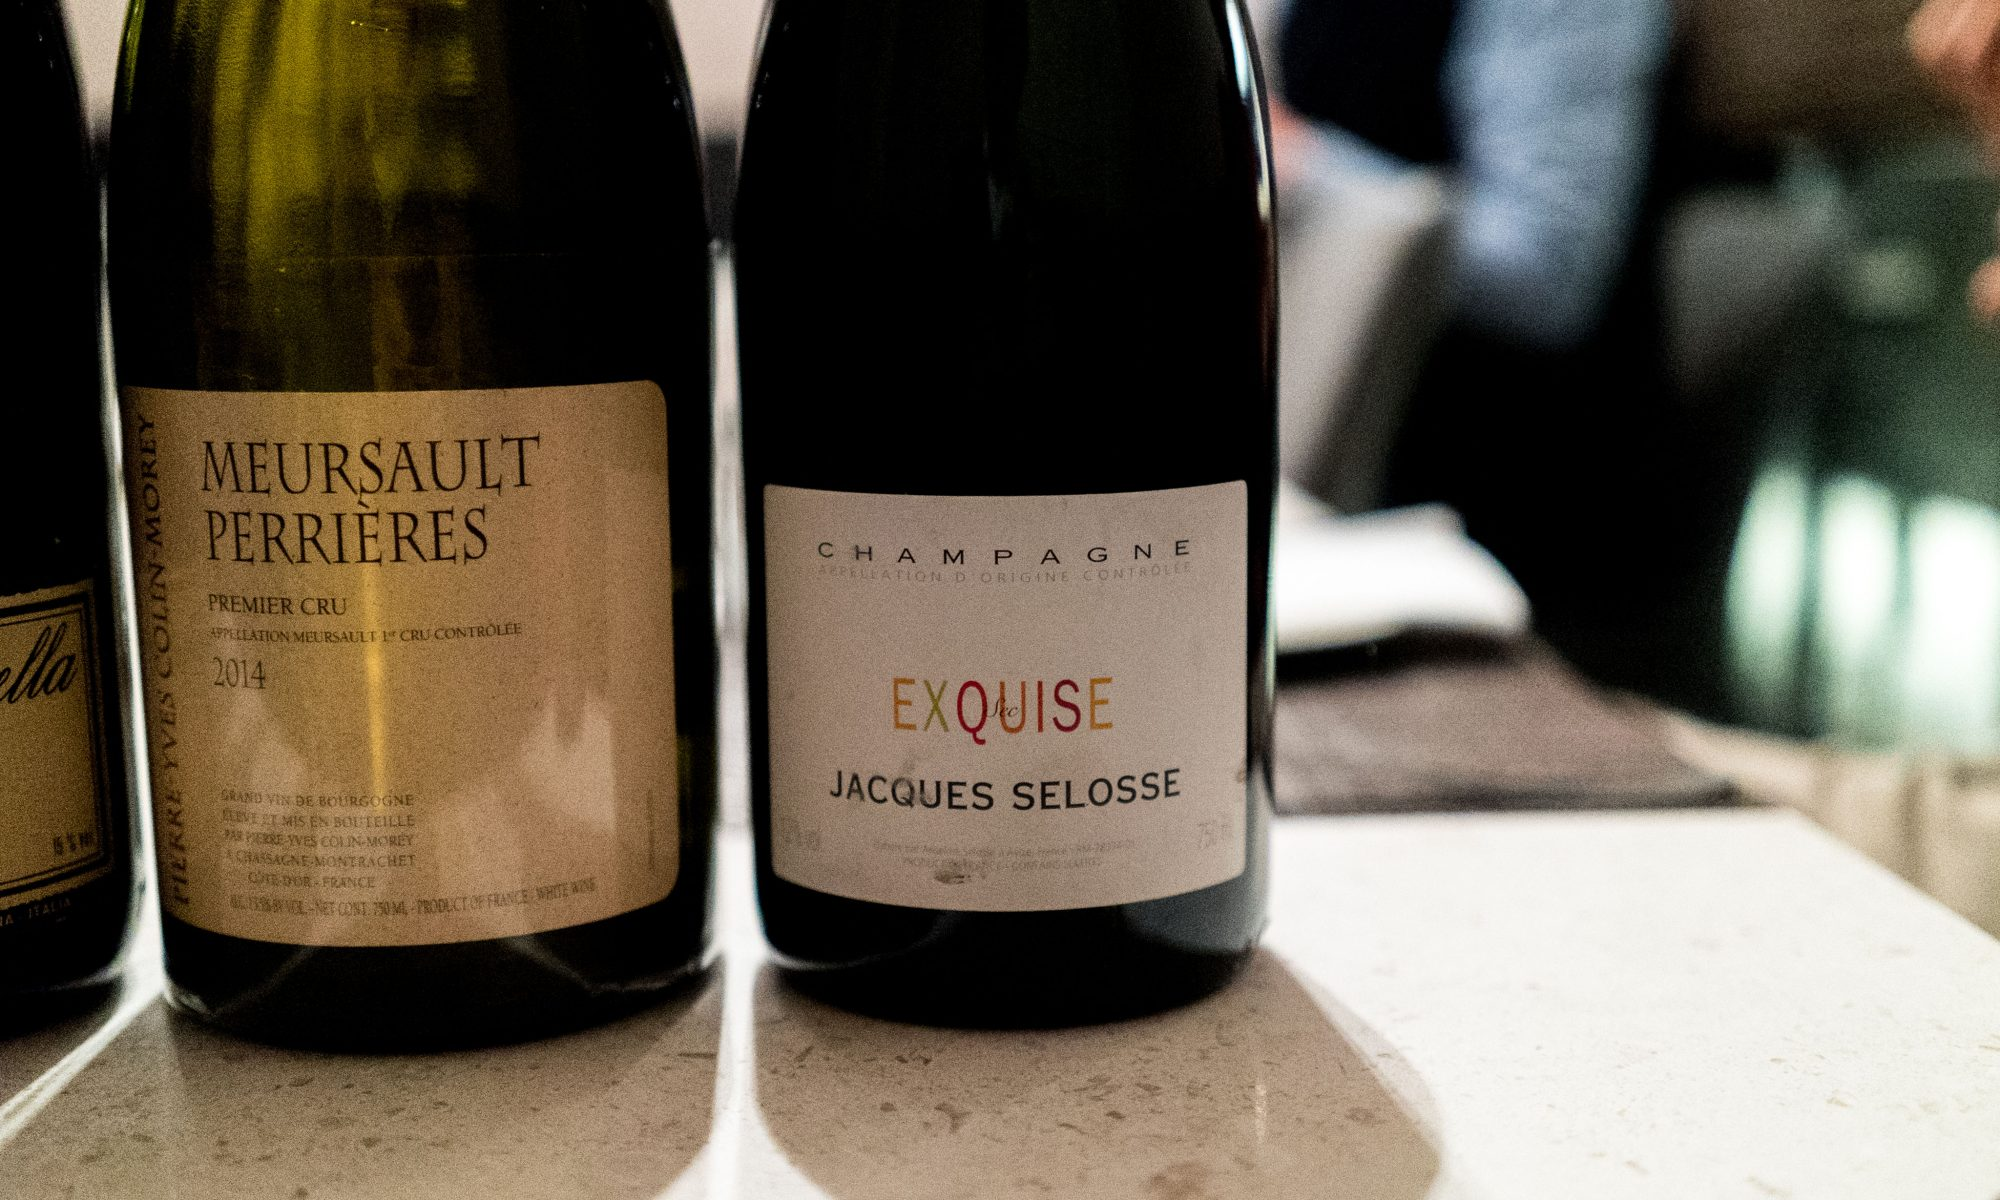 Jacques Selosse EXQUISE NV